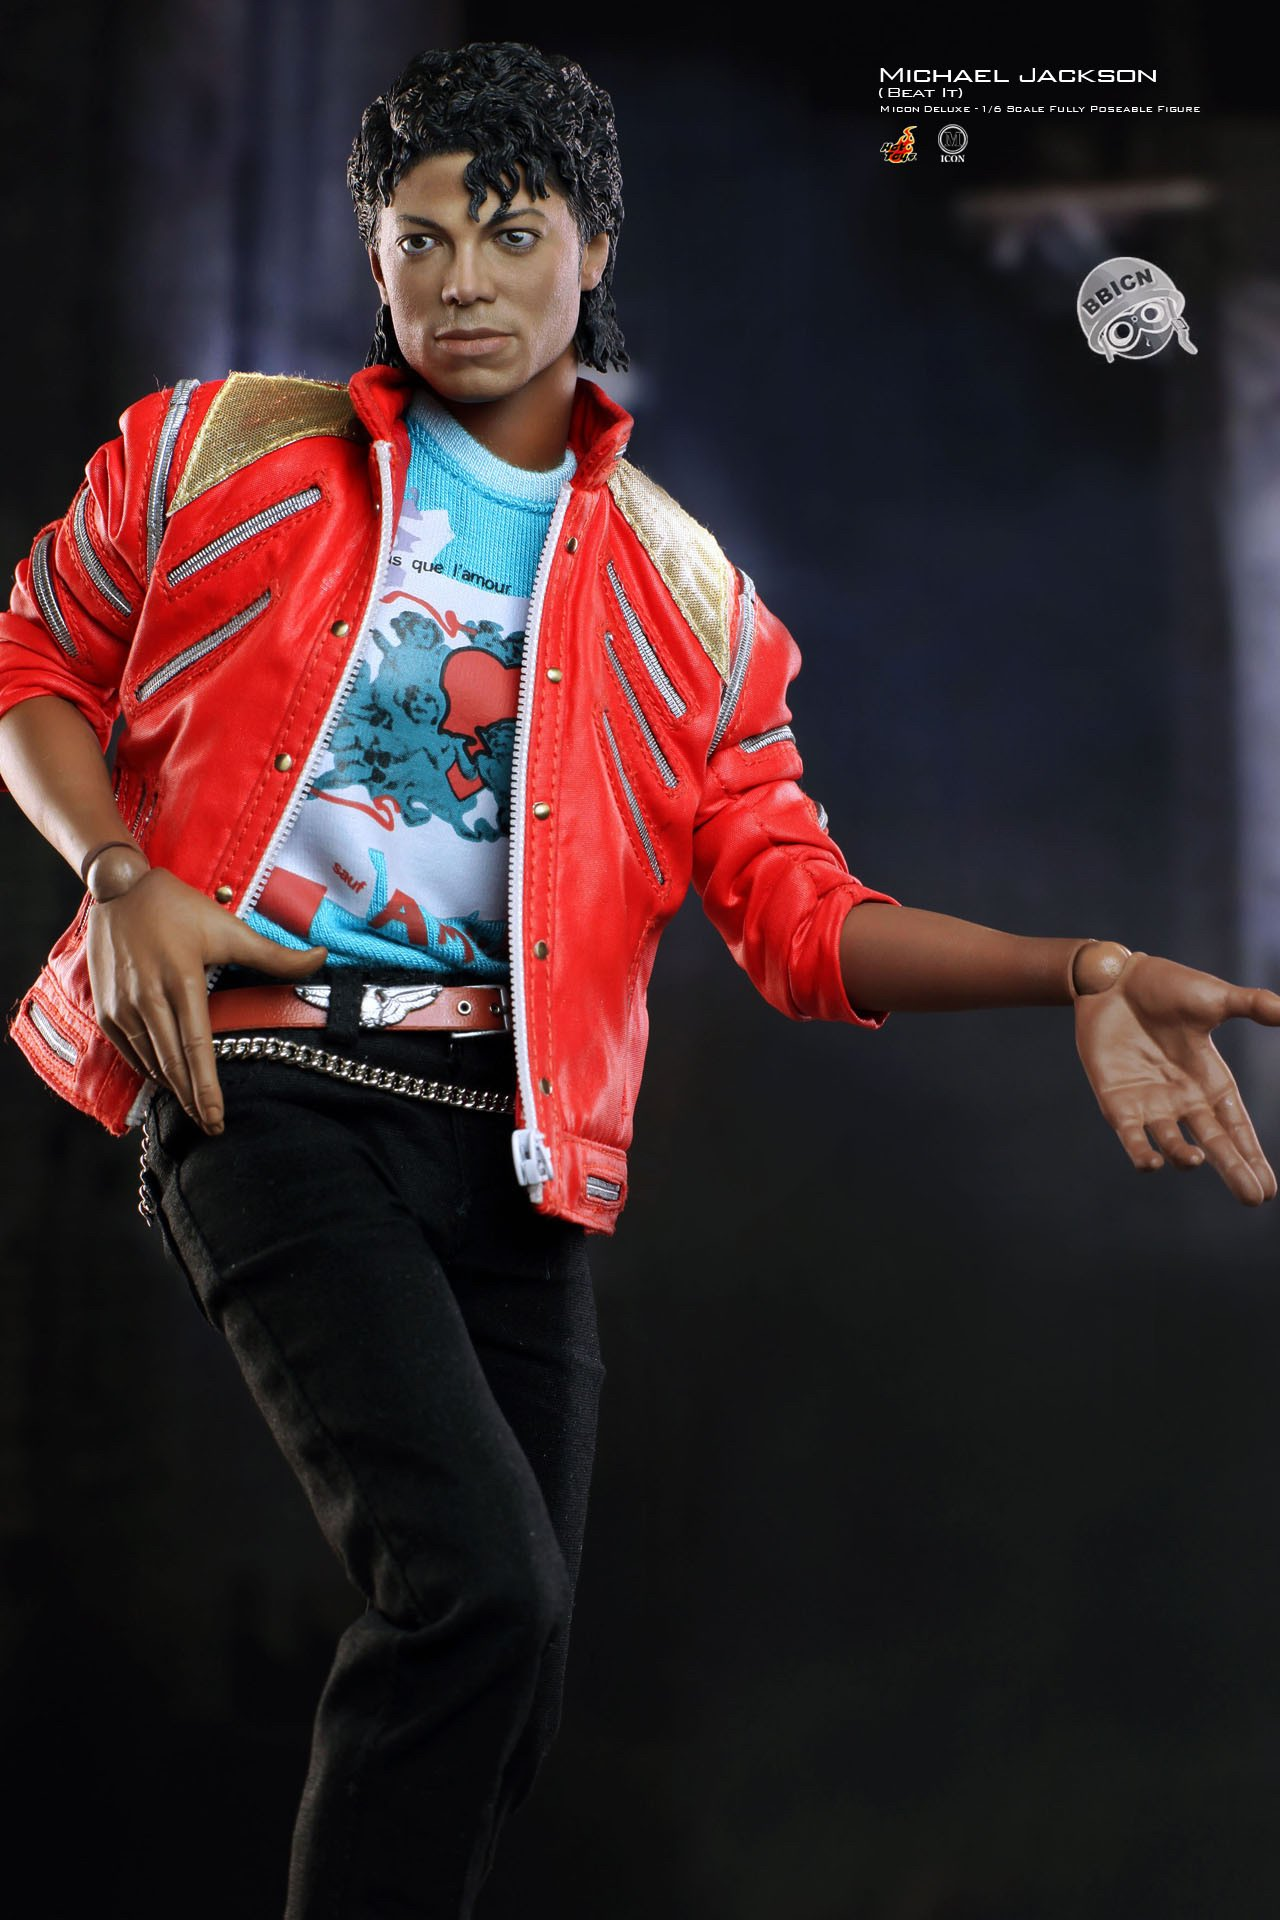 [NUOVE FOTO] Nuova Action Figure di Beat It - Pagina 2 0940543p3pb331v3z26729